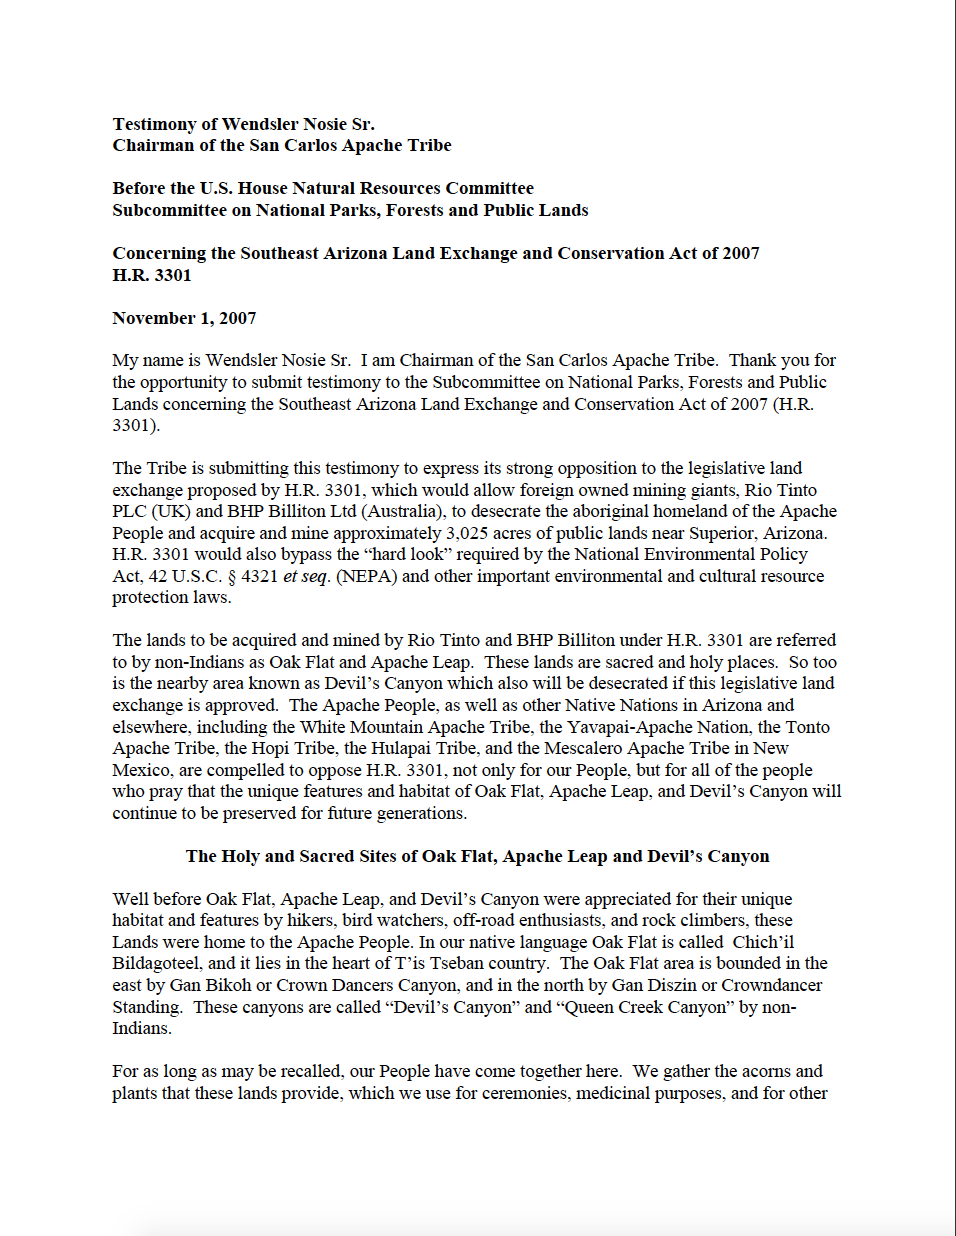 Thumbnail image of document cover: Testimony Before the U.S. House Natural Resources Committee, Subcommittee on National Parks, Forests and Public Lands: Concerning the Southeast Arizona Land Exchange and Conservation Act of 2007 H.R. 3301